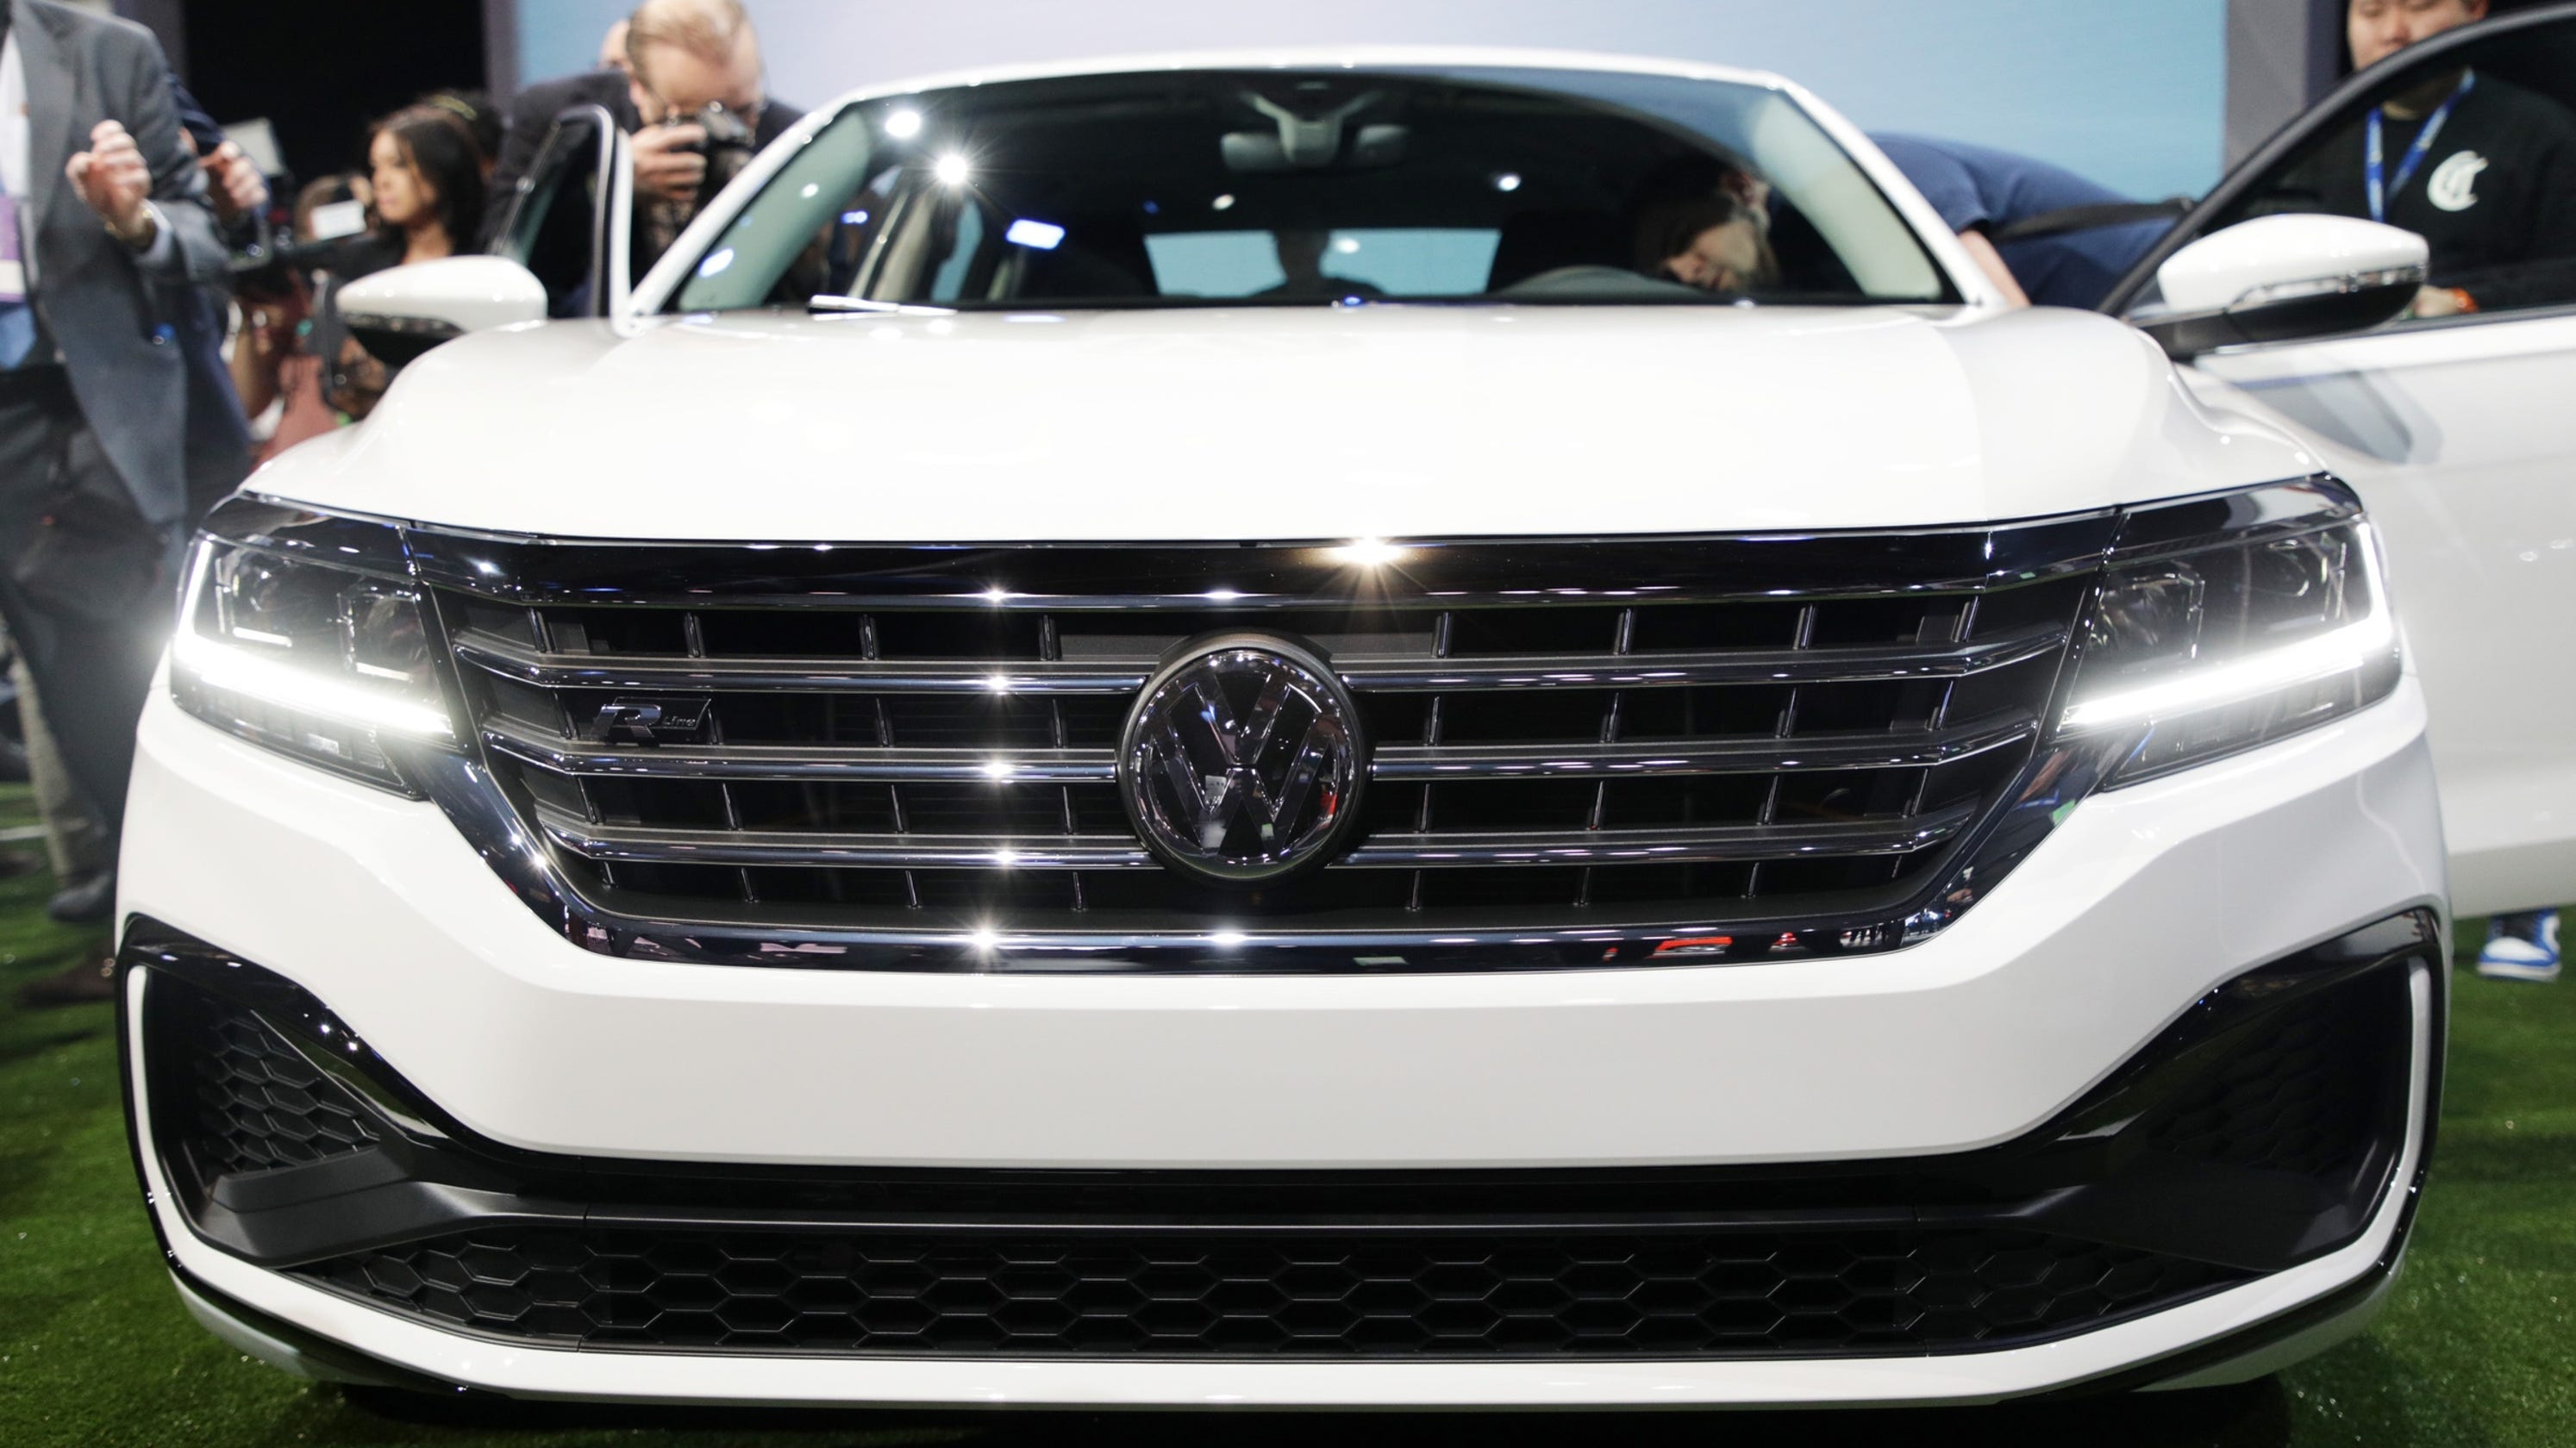 VW Electric Vehicle Plant: How Will Incentives Compare To